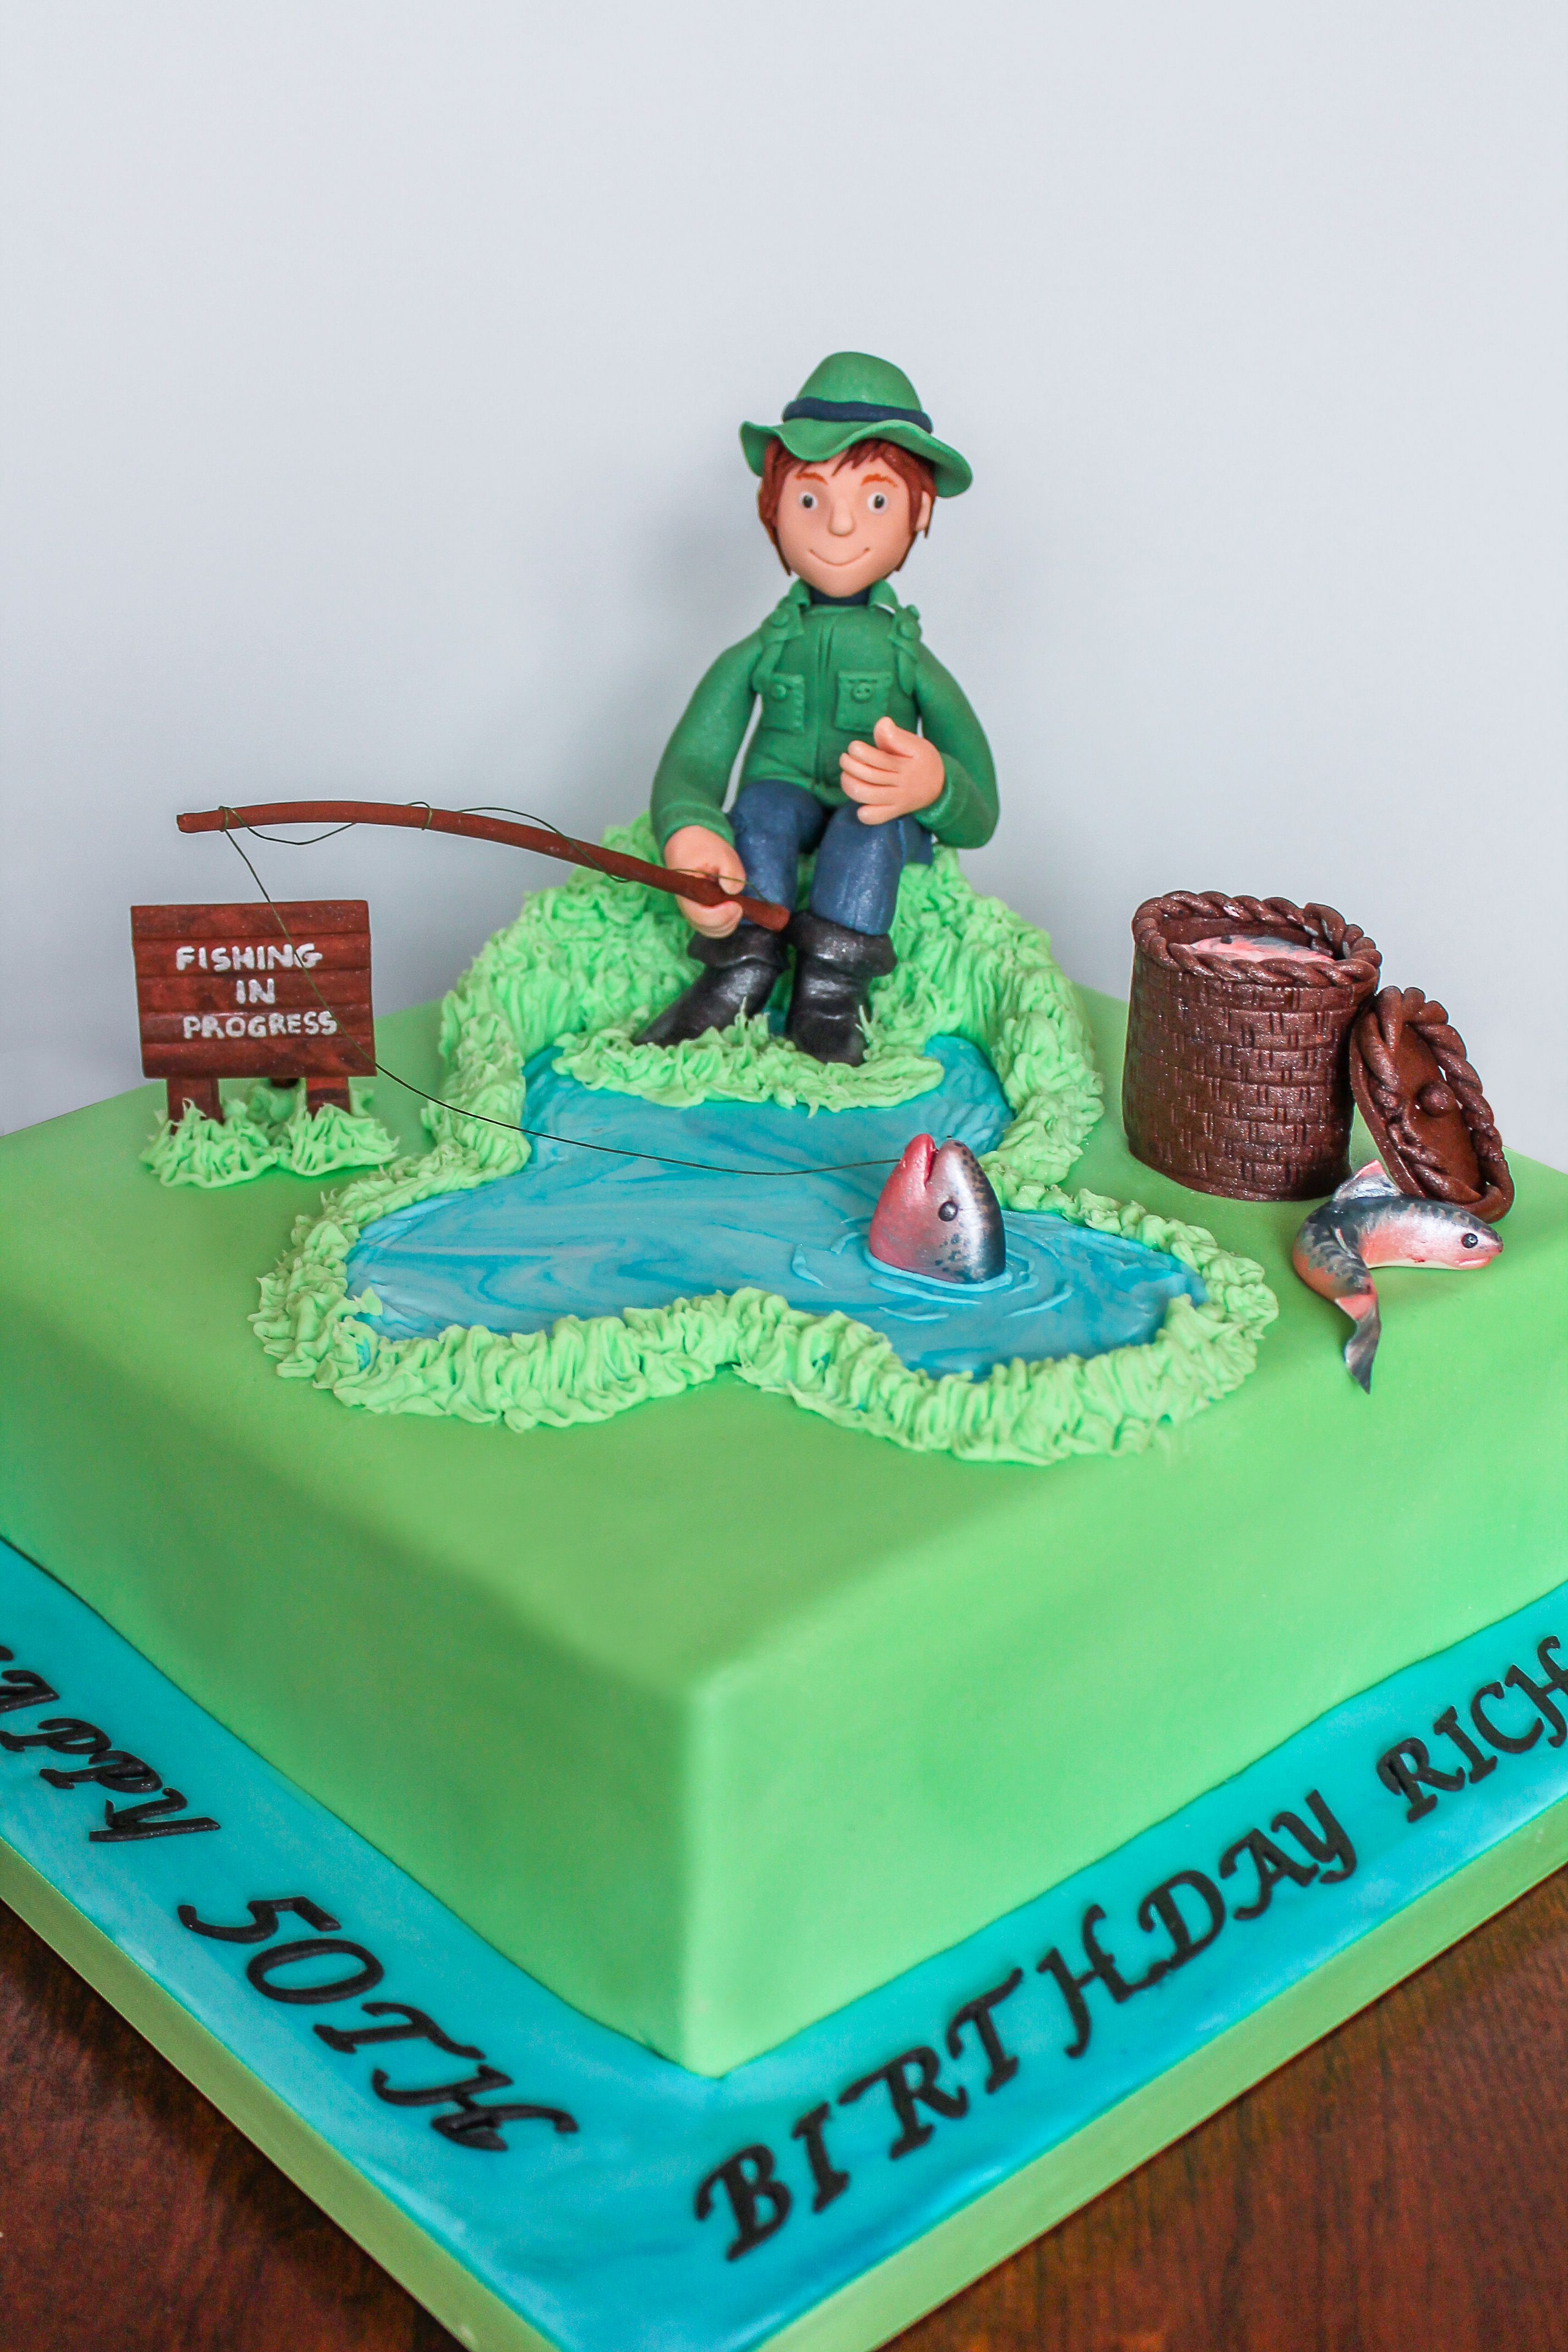 My latest unique cake designs of a man fishing for a 50th Birthday